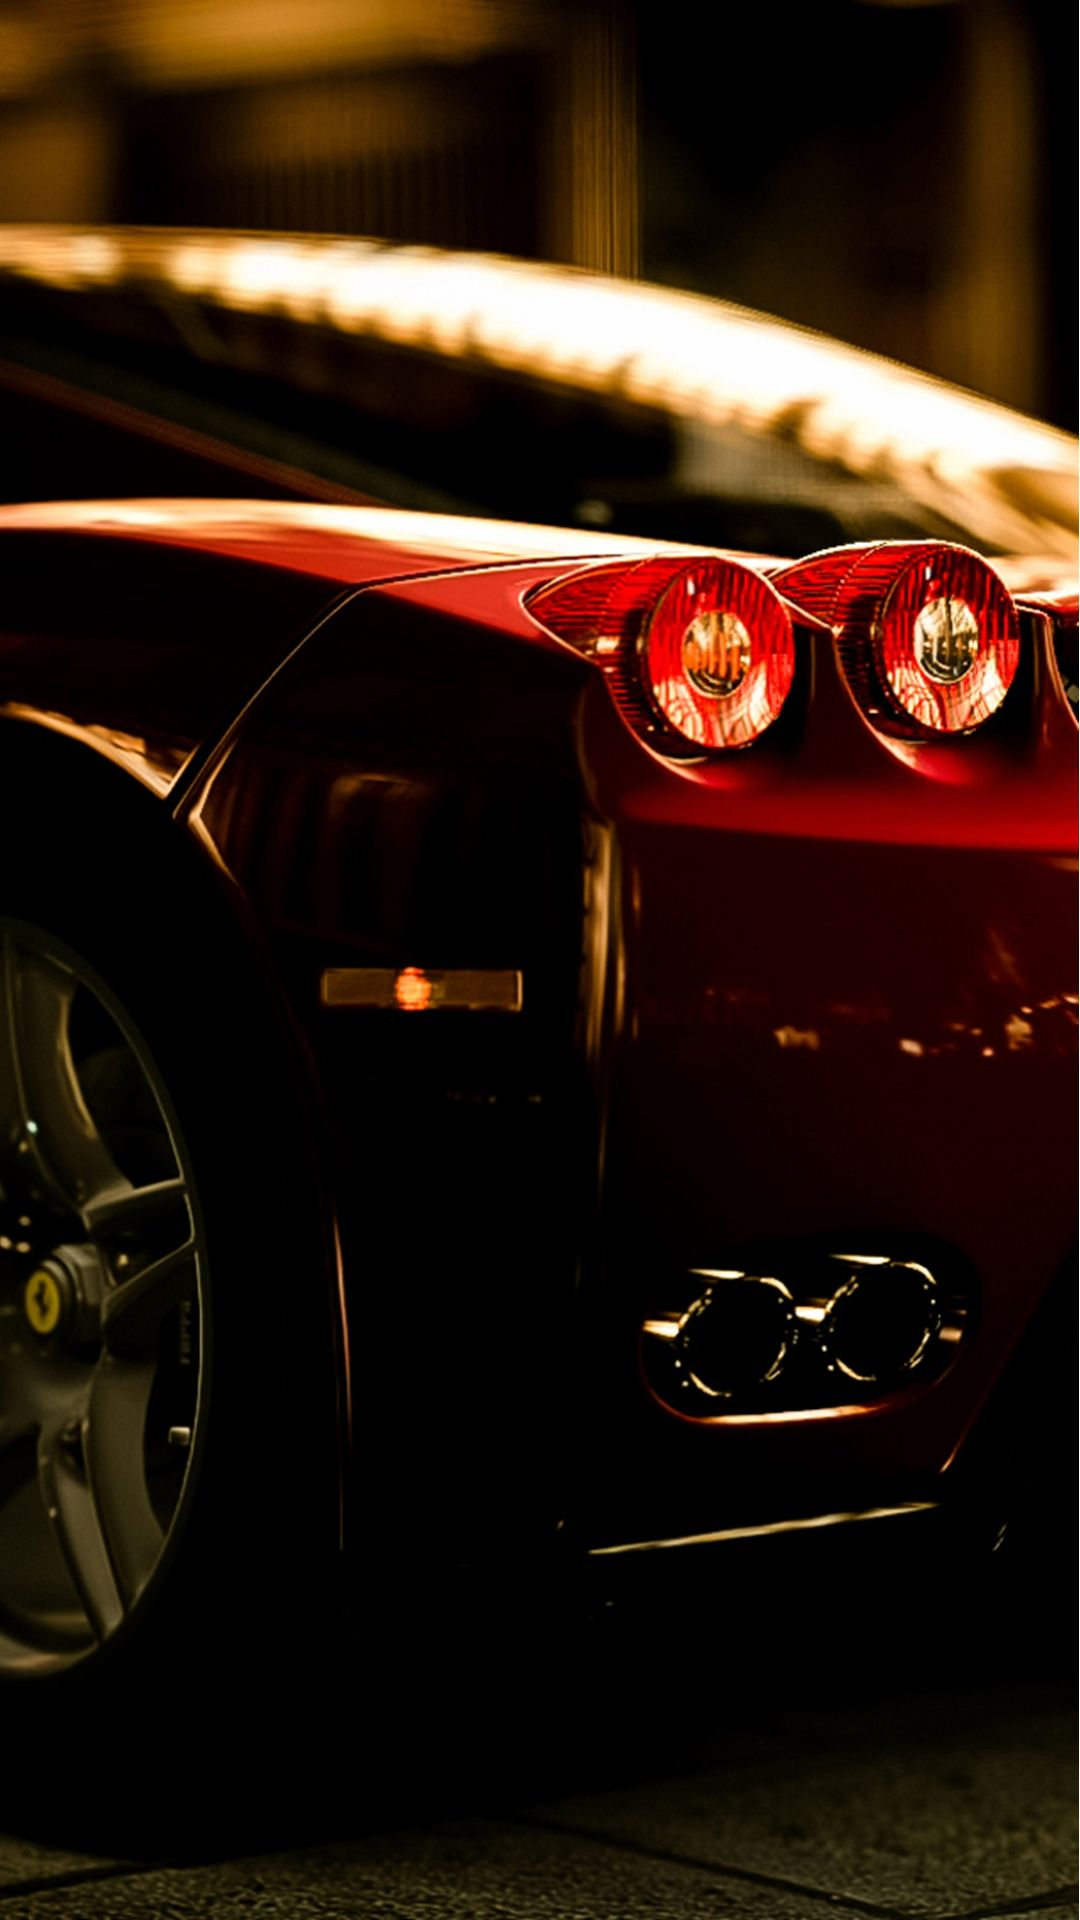 Ferrari Rear Lights View Iphone  Wallpaper